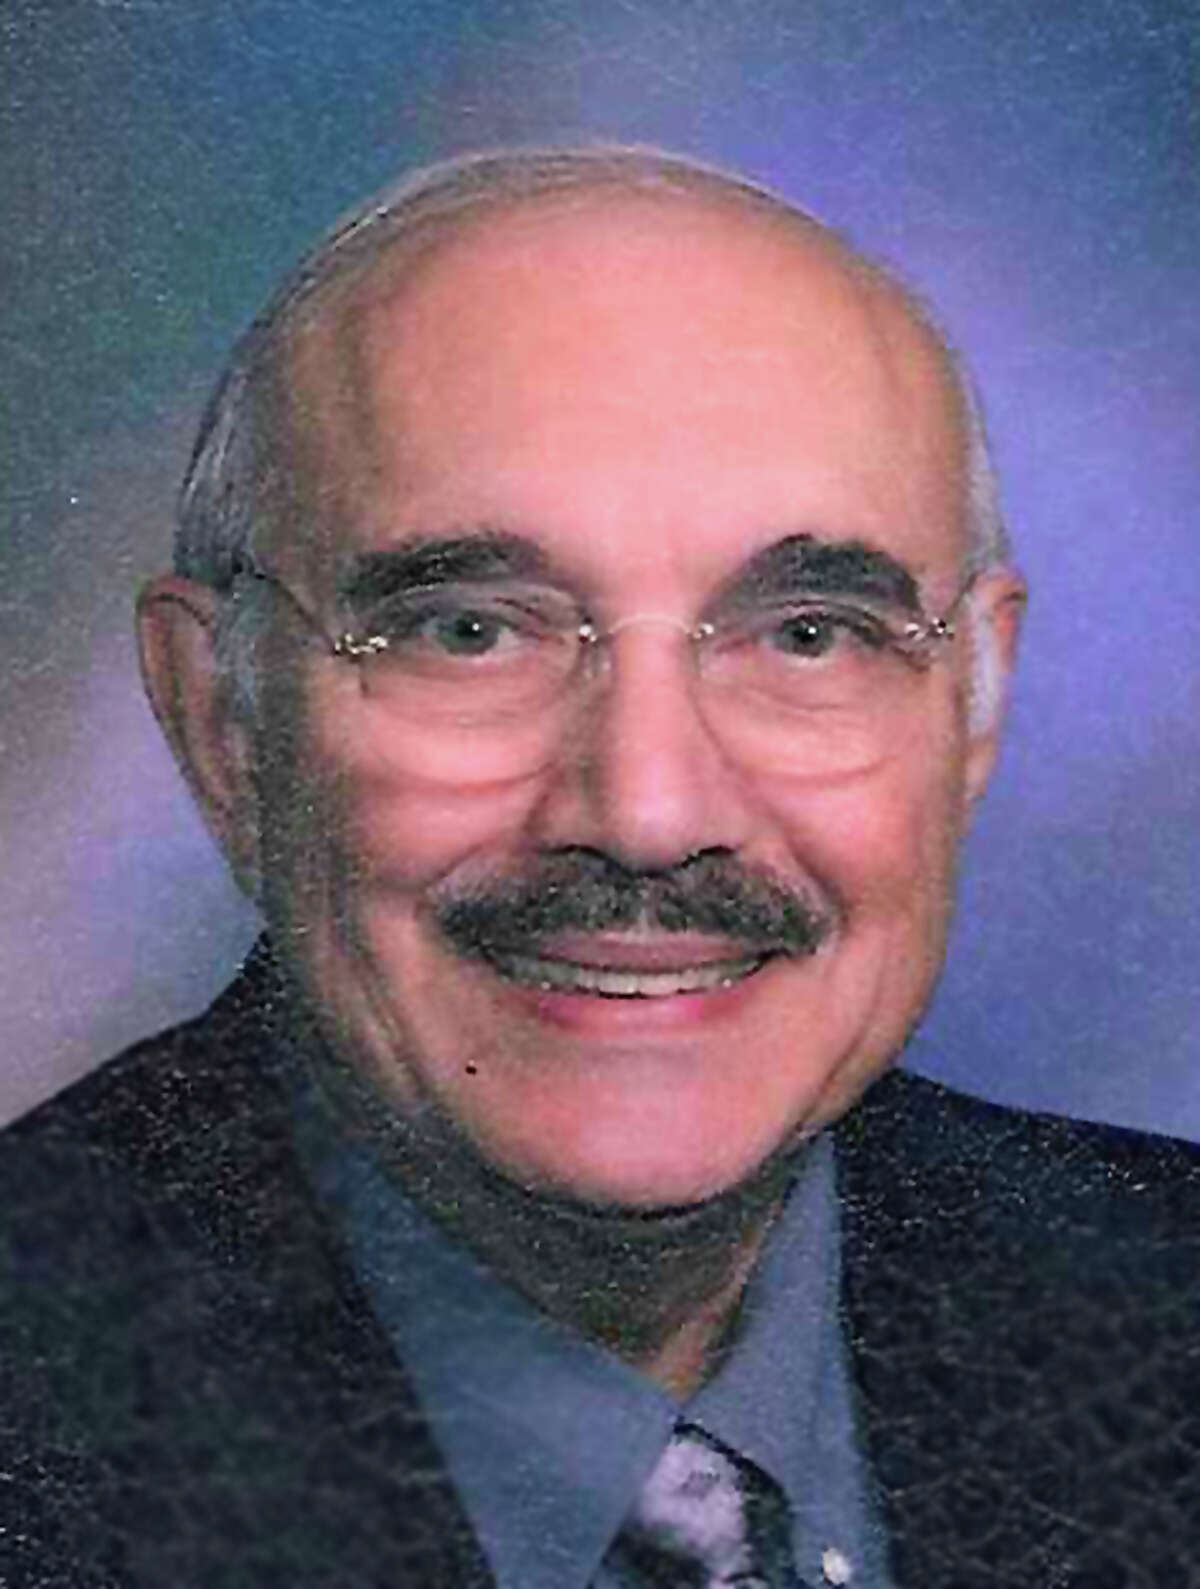 Dr. Lionel N. Roger - who practiced medicine for more than 50 years, the last 18 in San Antonio, and considered medicine his great love - died Feb. 18 of acute leukemia. He was 78.